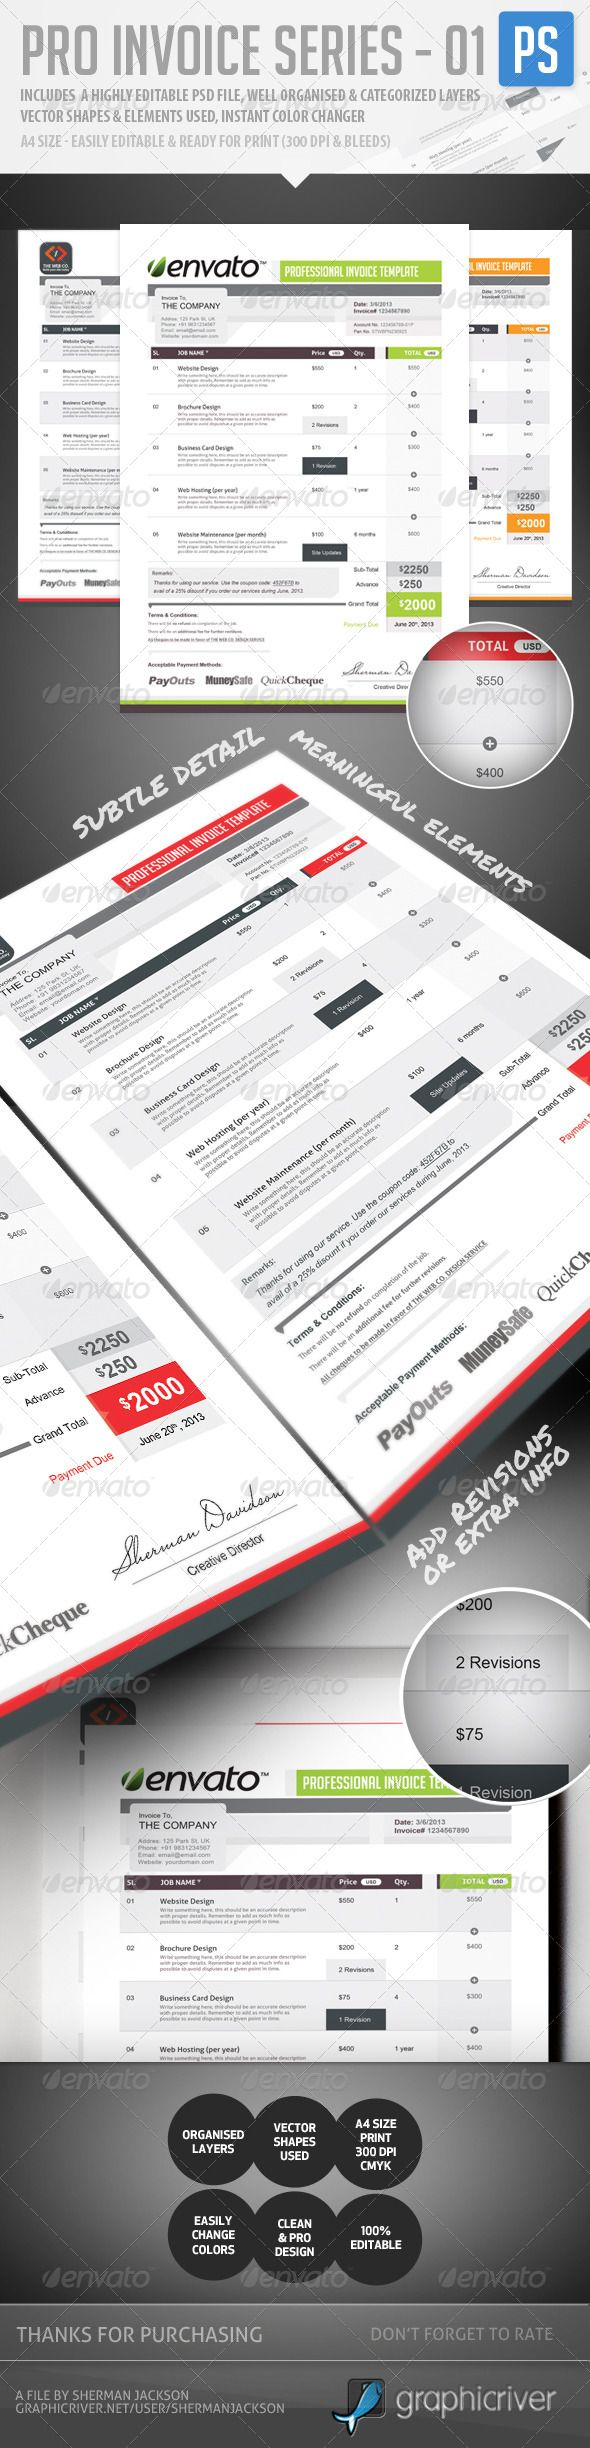 pro invoice template series 01